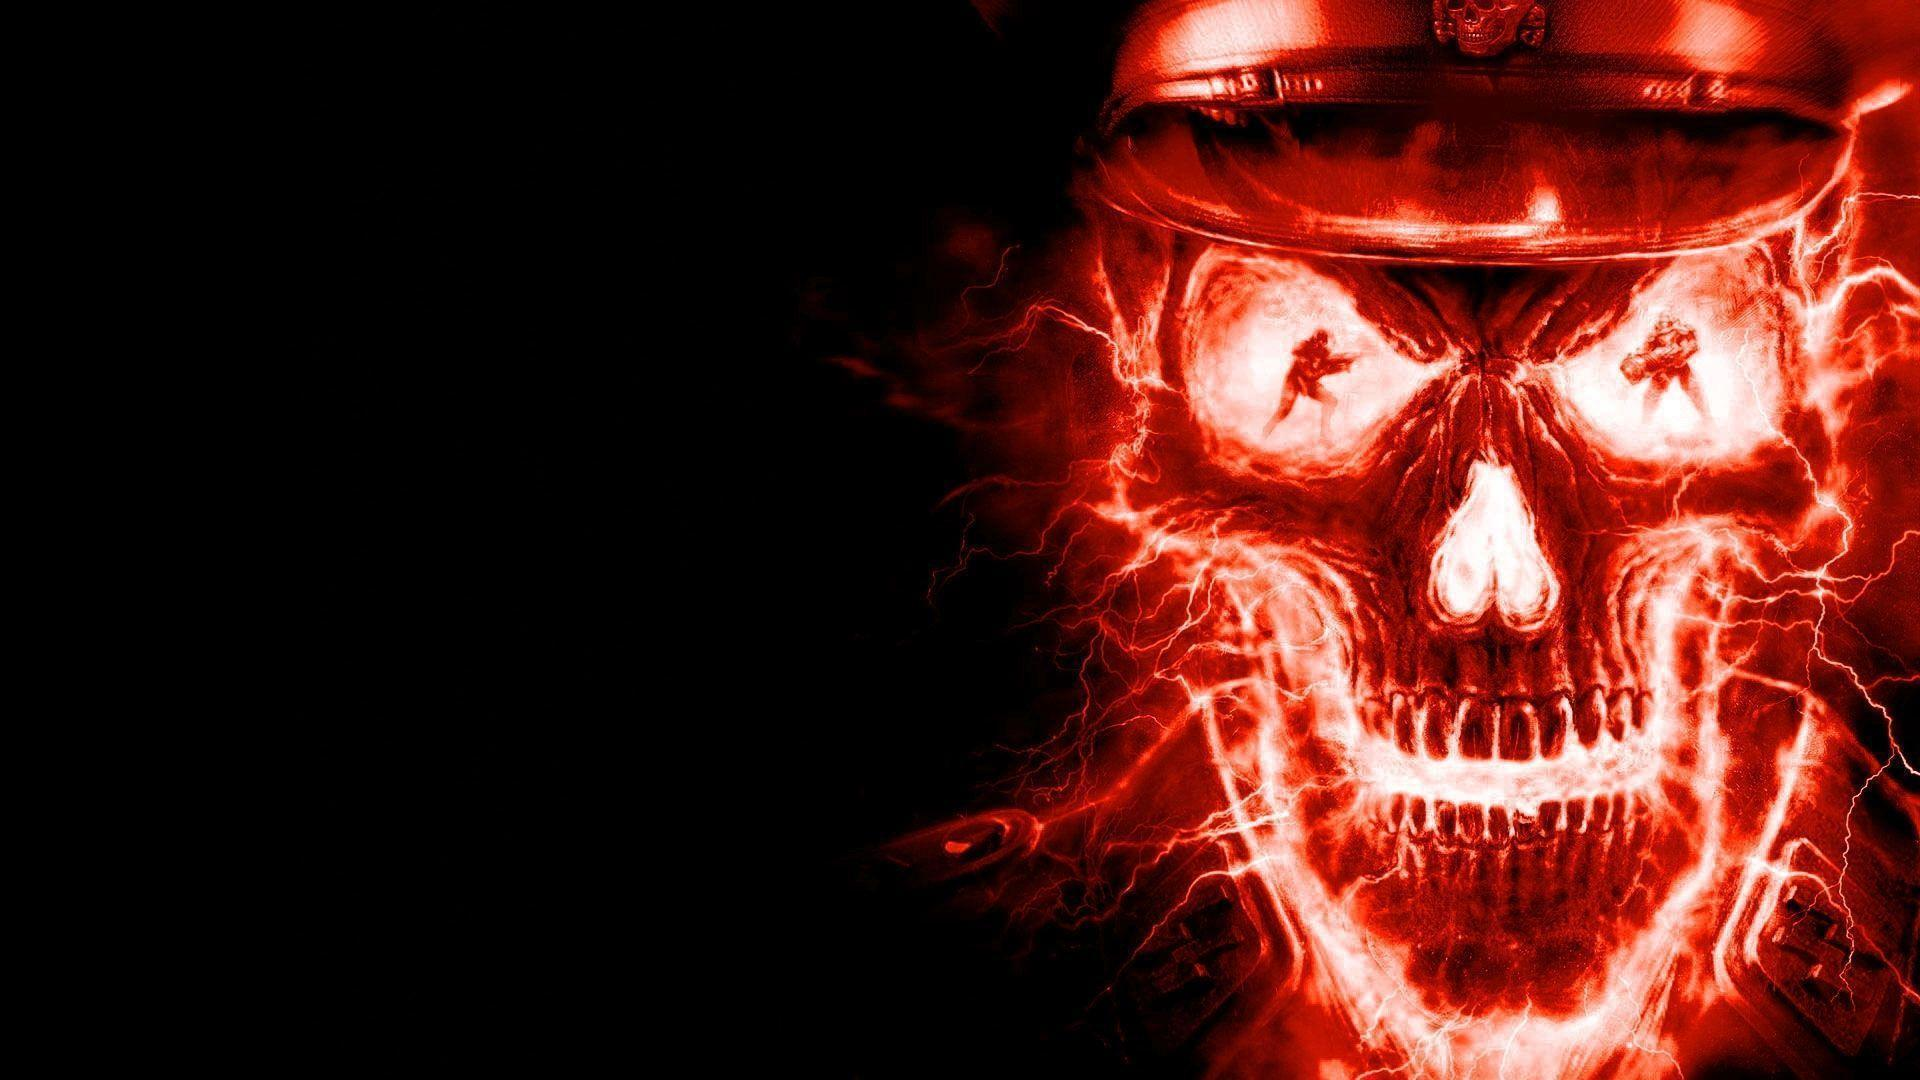 Cool Flaming Skull Wallpapers Images amp Pictures   Becuo 1920x1080